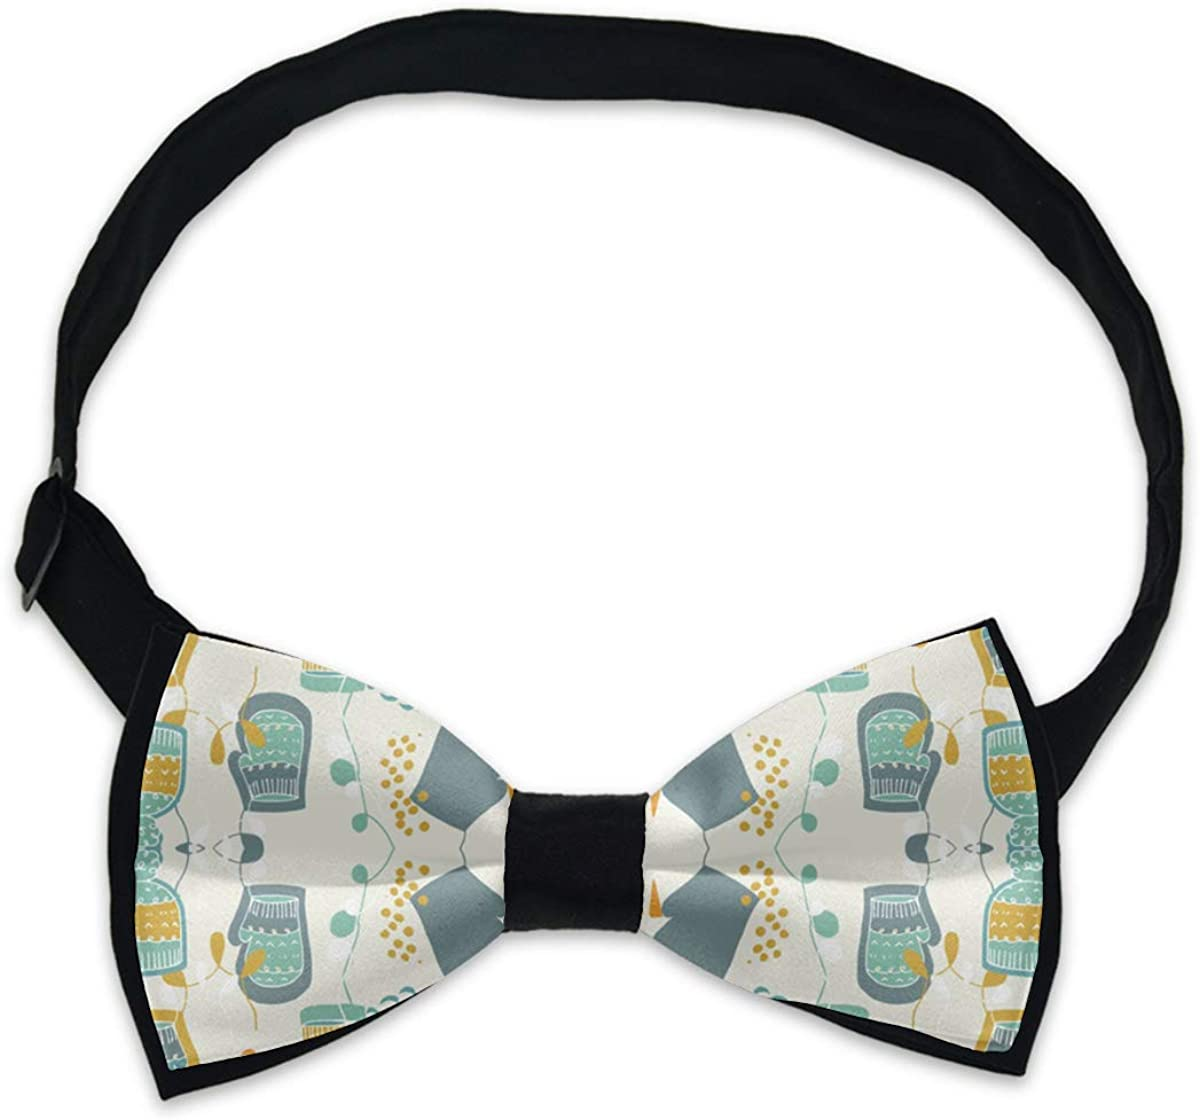 Birthday Bow Tie Gift, Casual and Formal Tuxedo Bow Tie - Creative Neckties